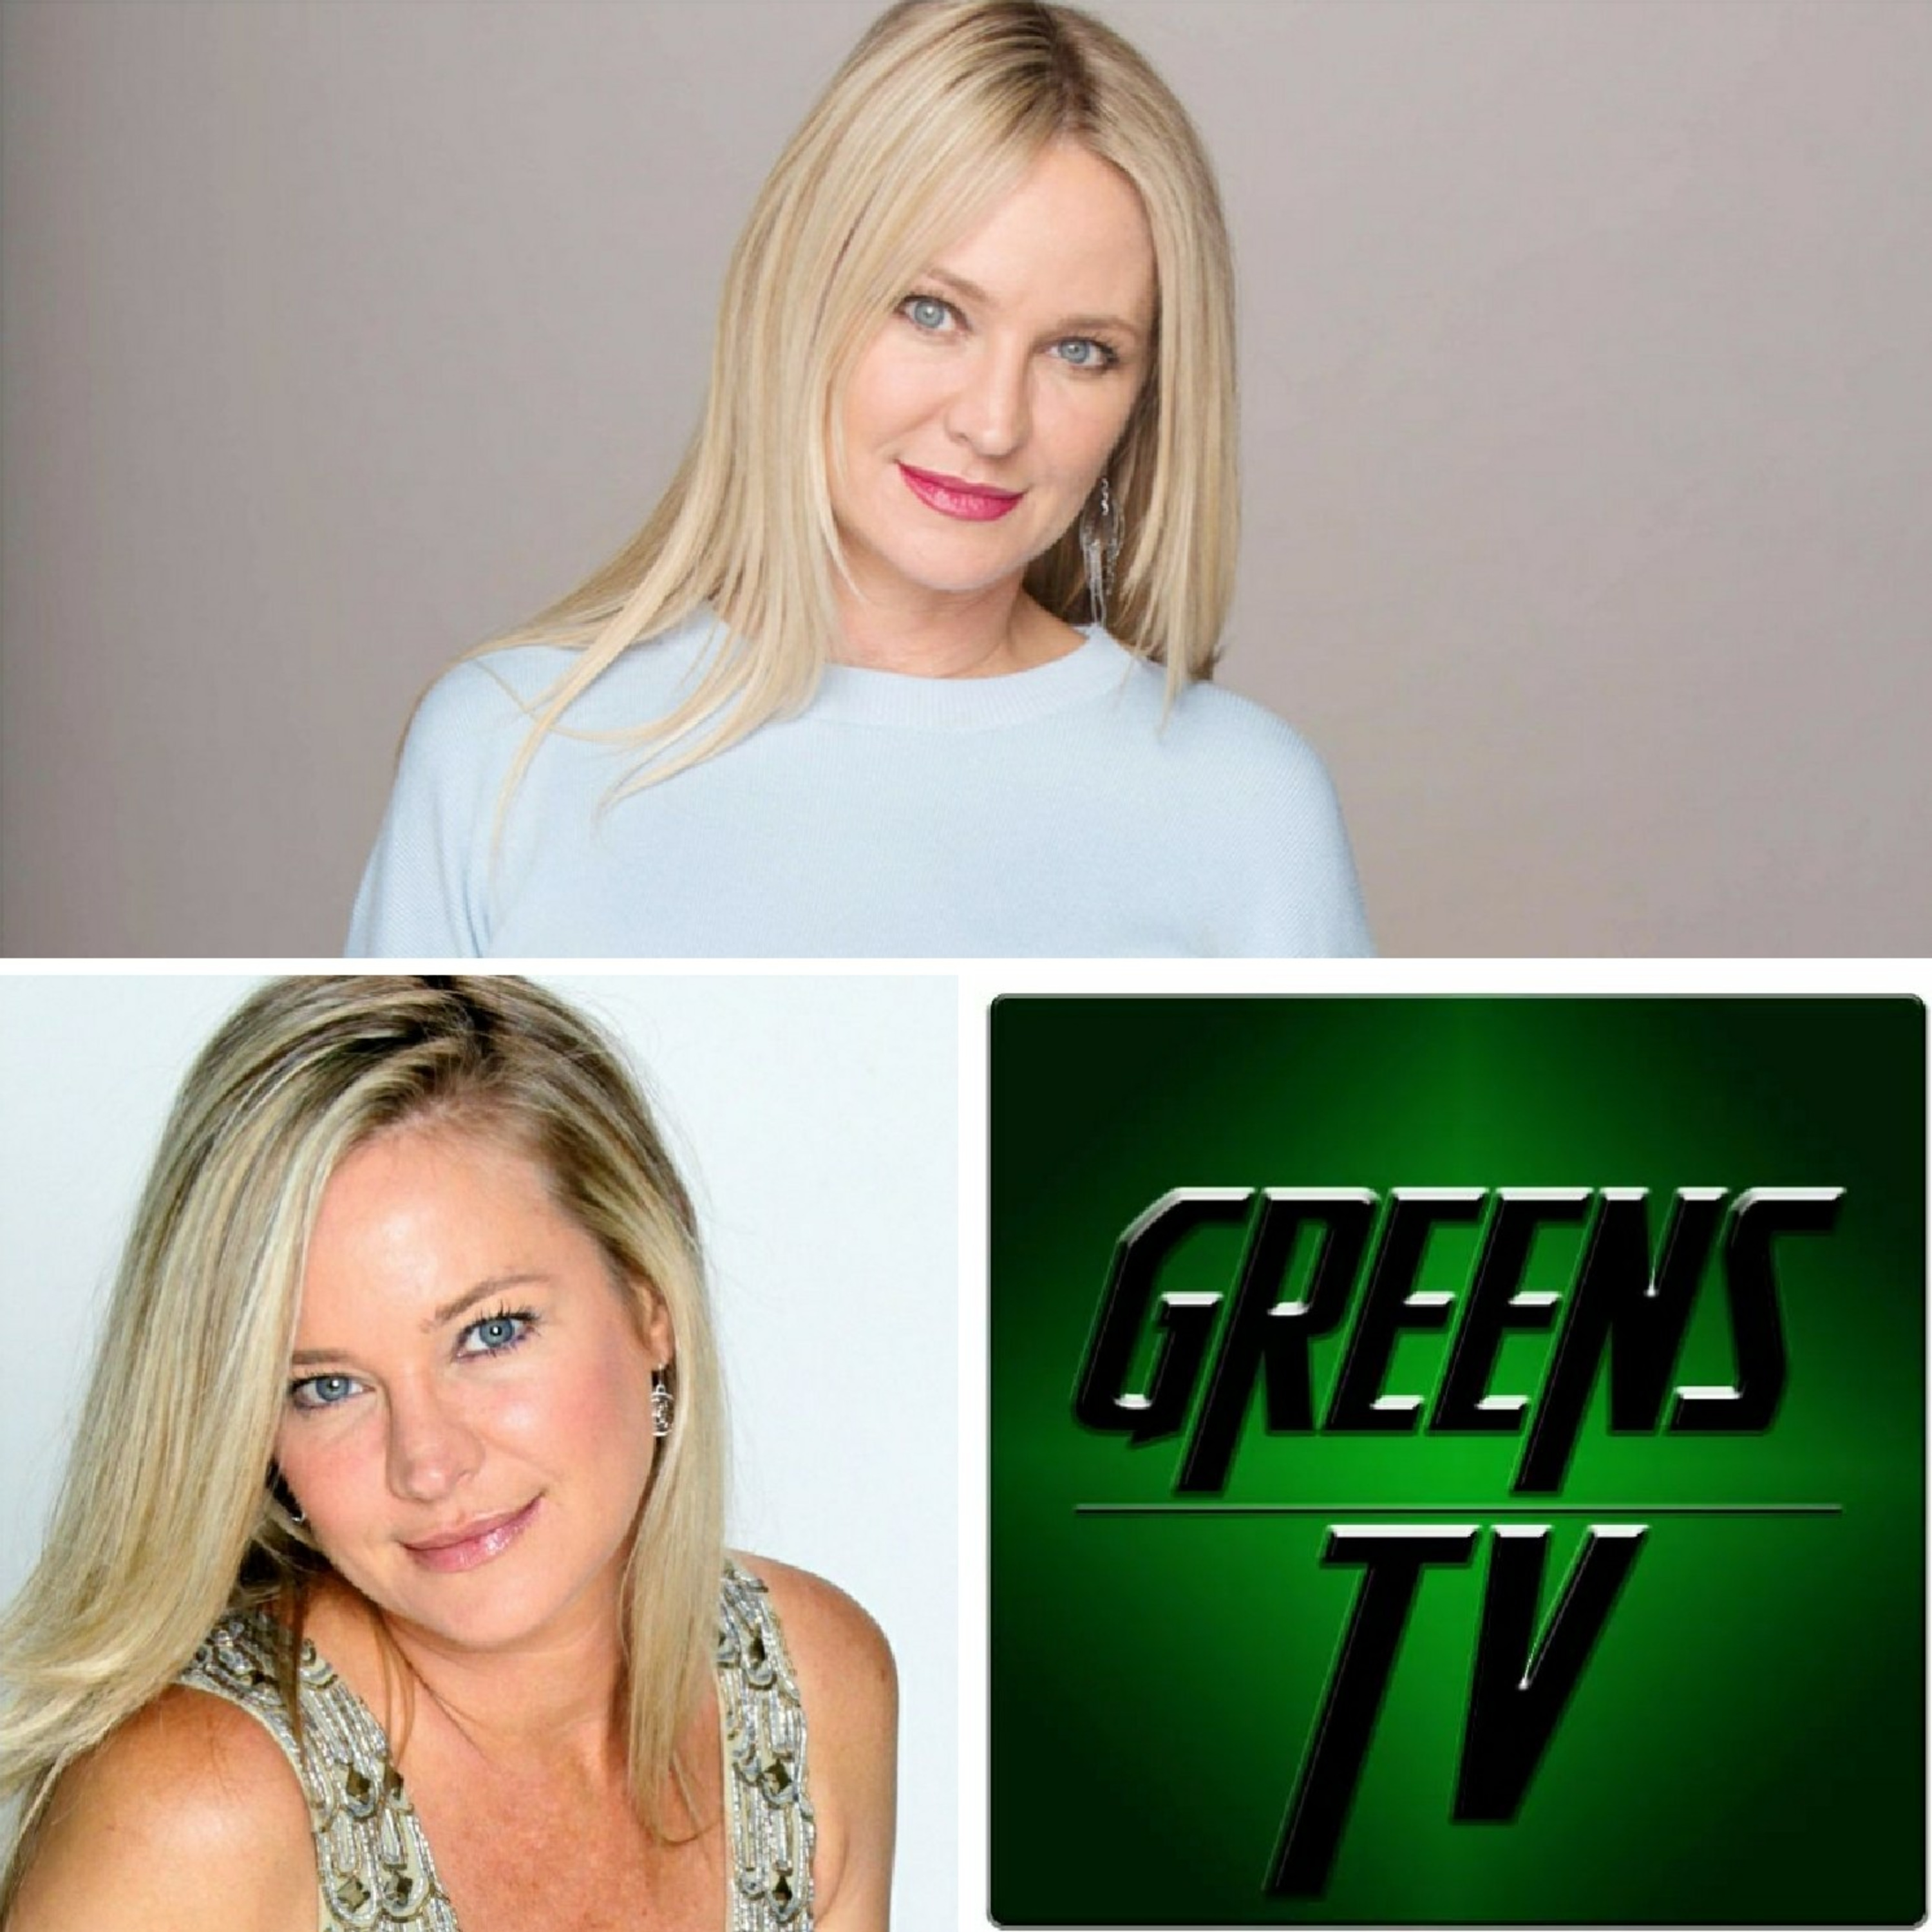 ✨ S4Ep2 : #SharonCaseNight , Dedicated to Sharon Case , Sponsored by Greens Tv Streaming Service